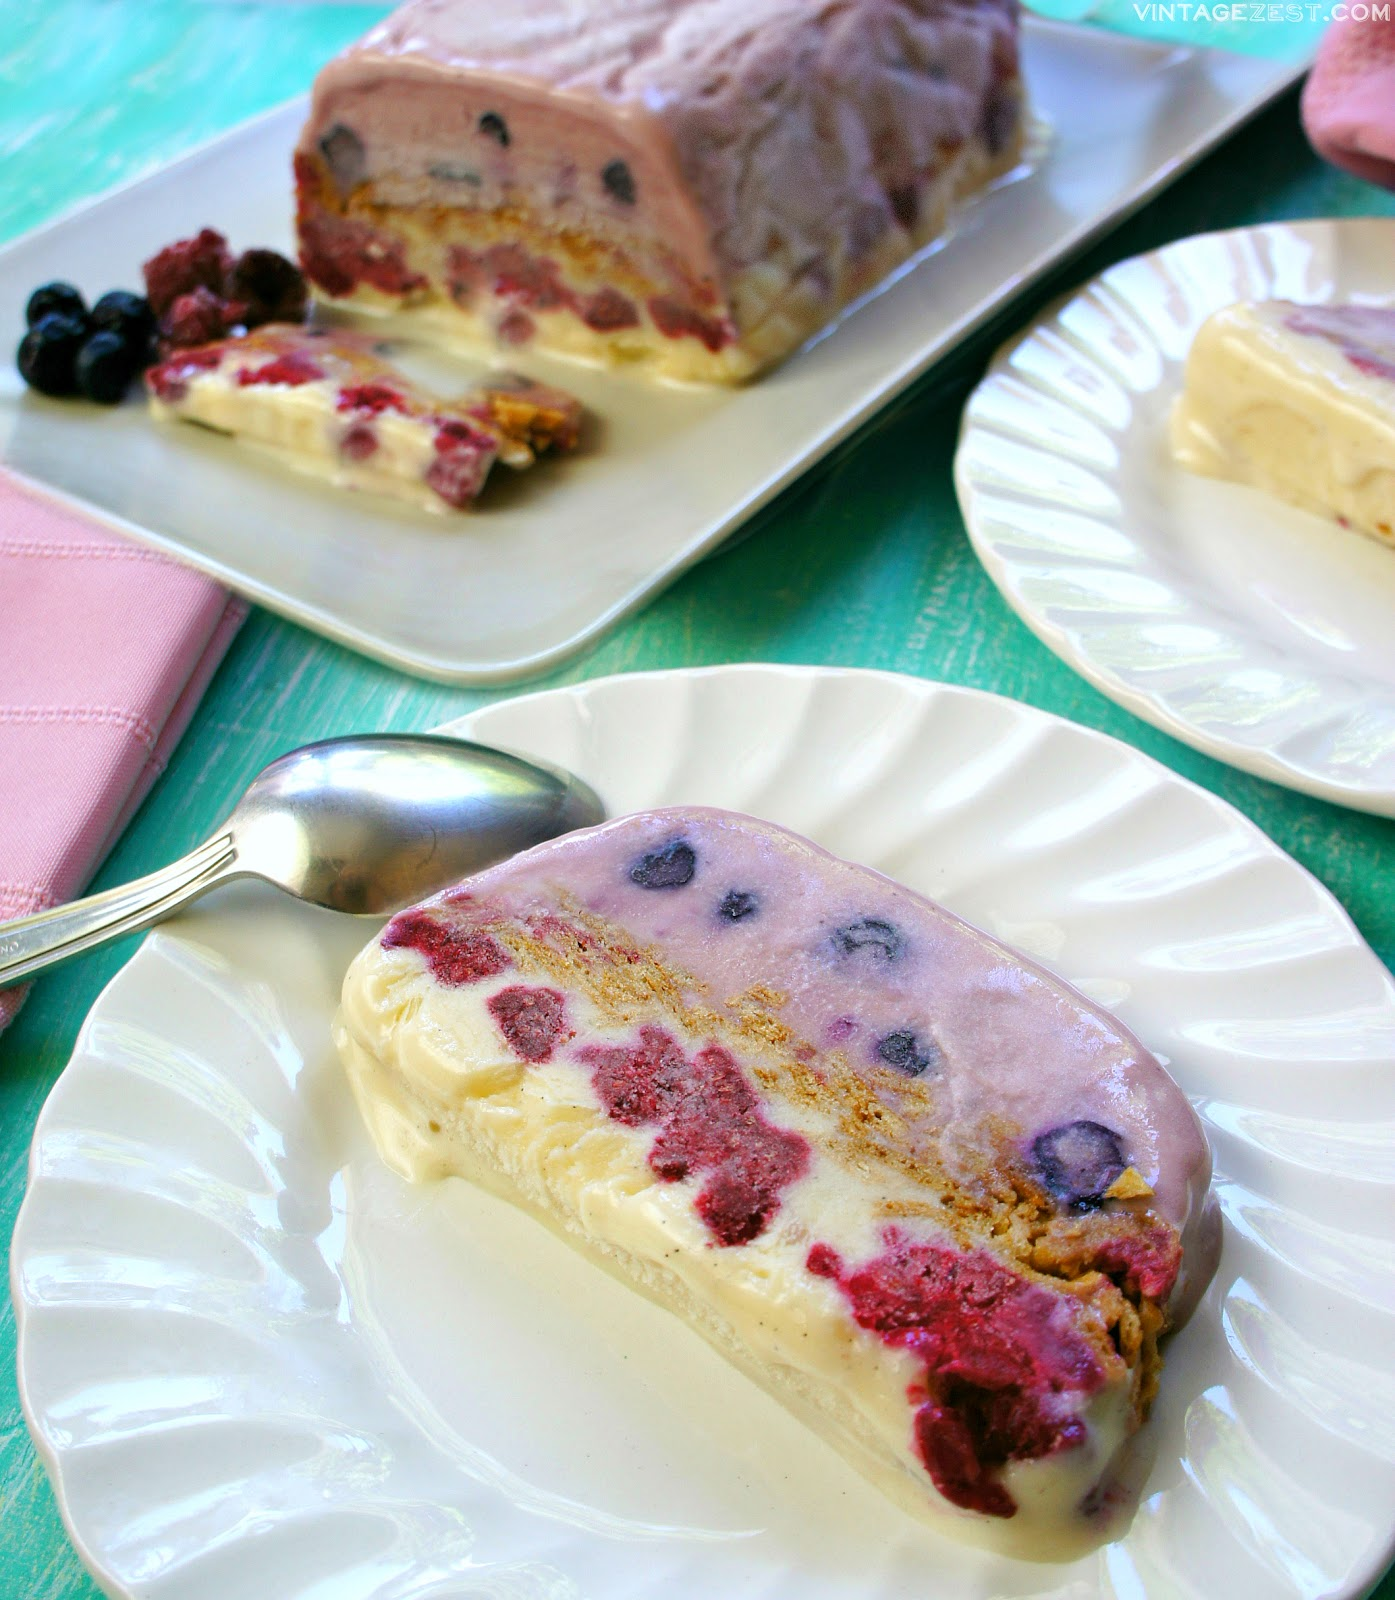 Berry Frozen Yogurt Cake ~ Vintage Zest | A quick, easy, family-friendly dessert that is gorgeous enough to serve at a party and healthy enough to gobble up after any weeknight dinner!